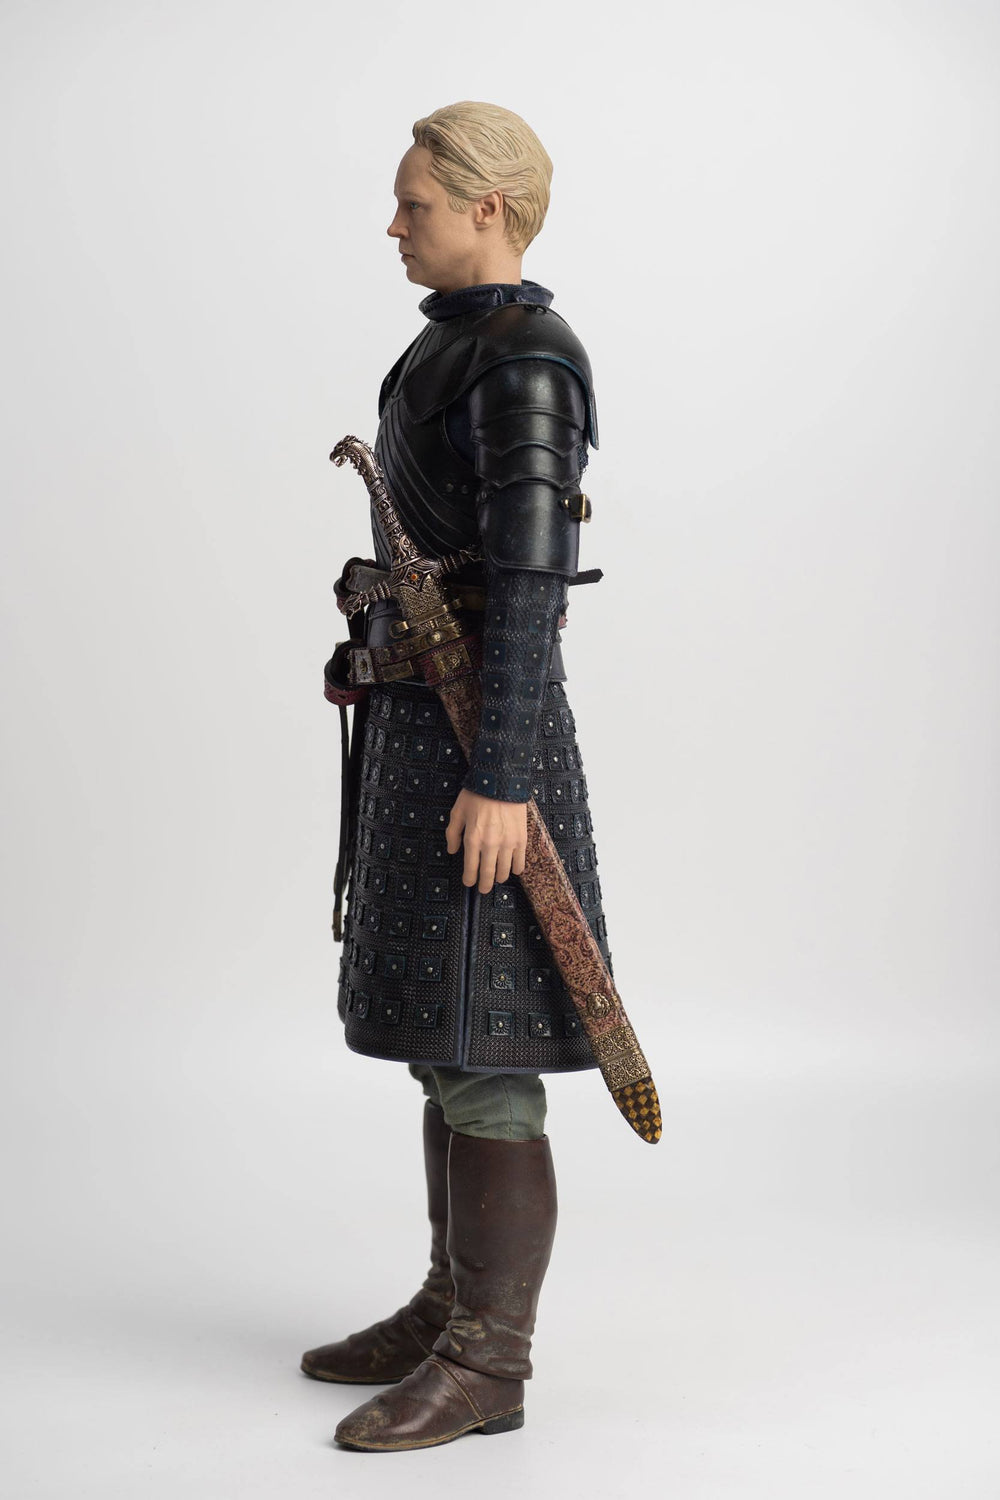 Threezero Game Of Thrones Brienne of Tarth 1/6 Action Figure